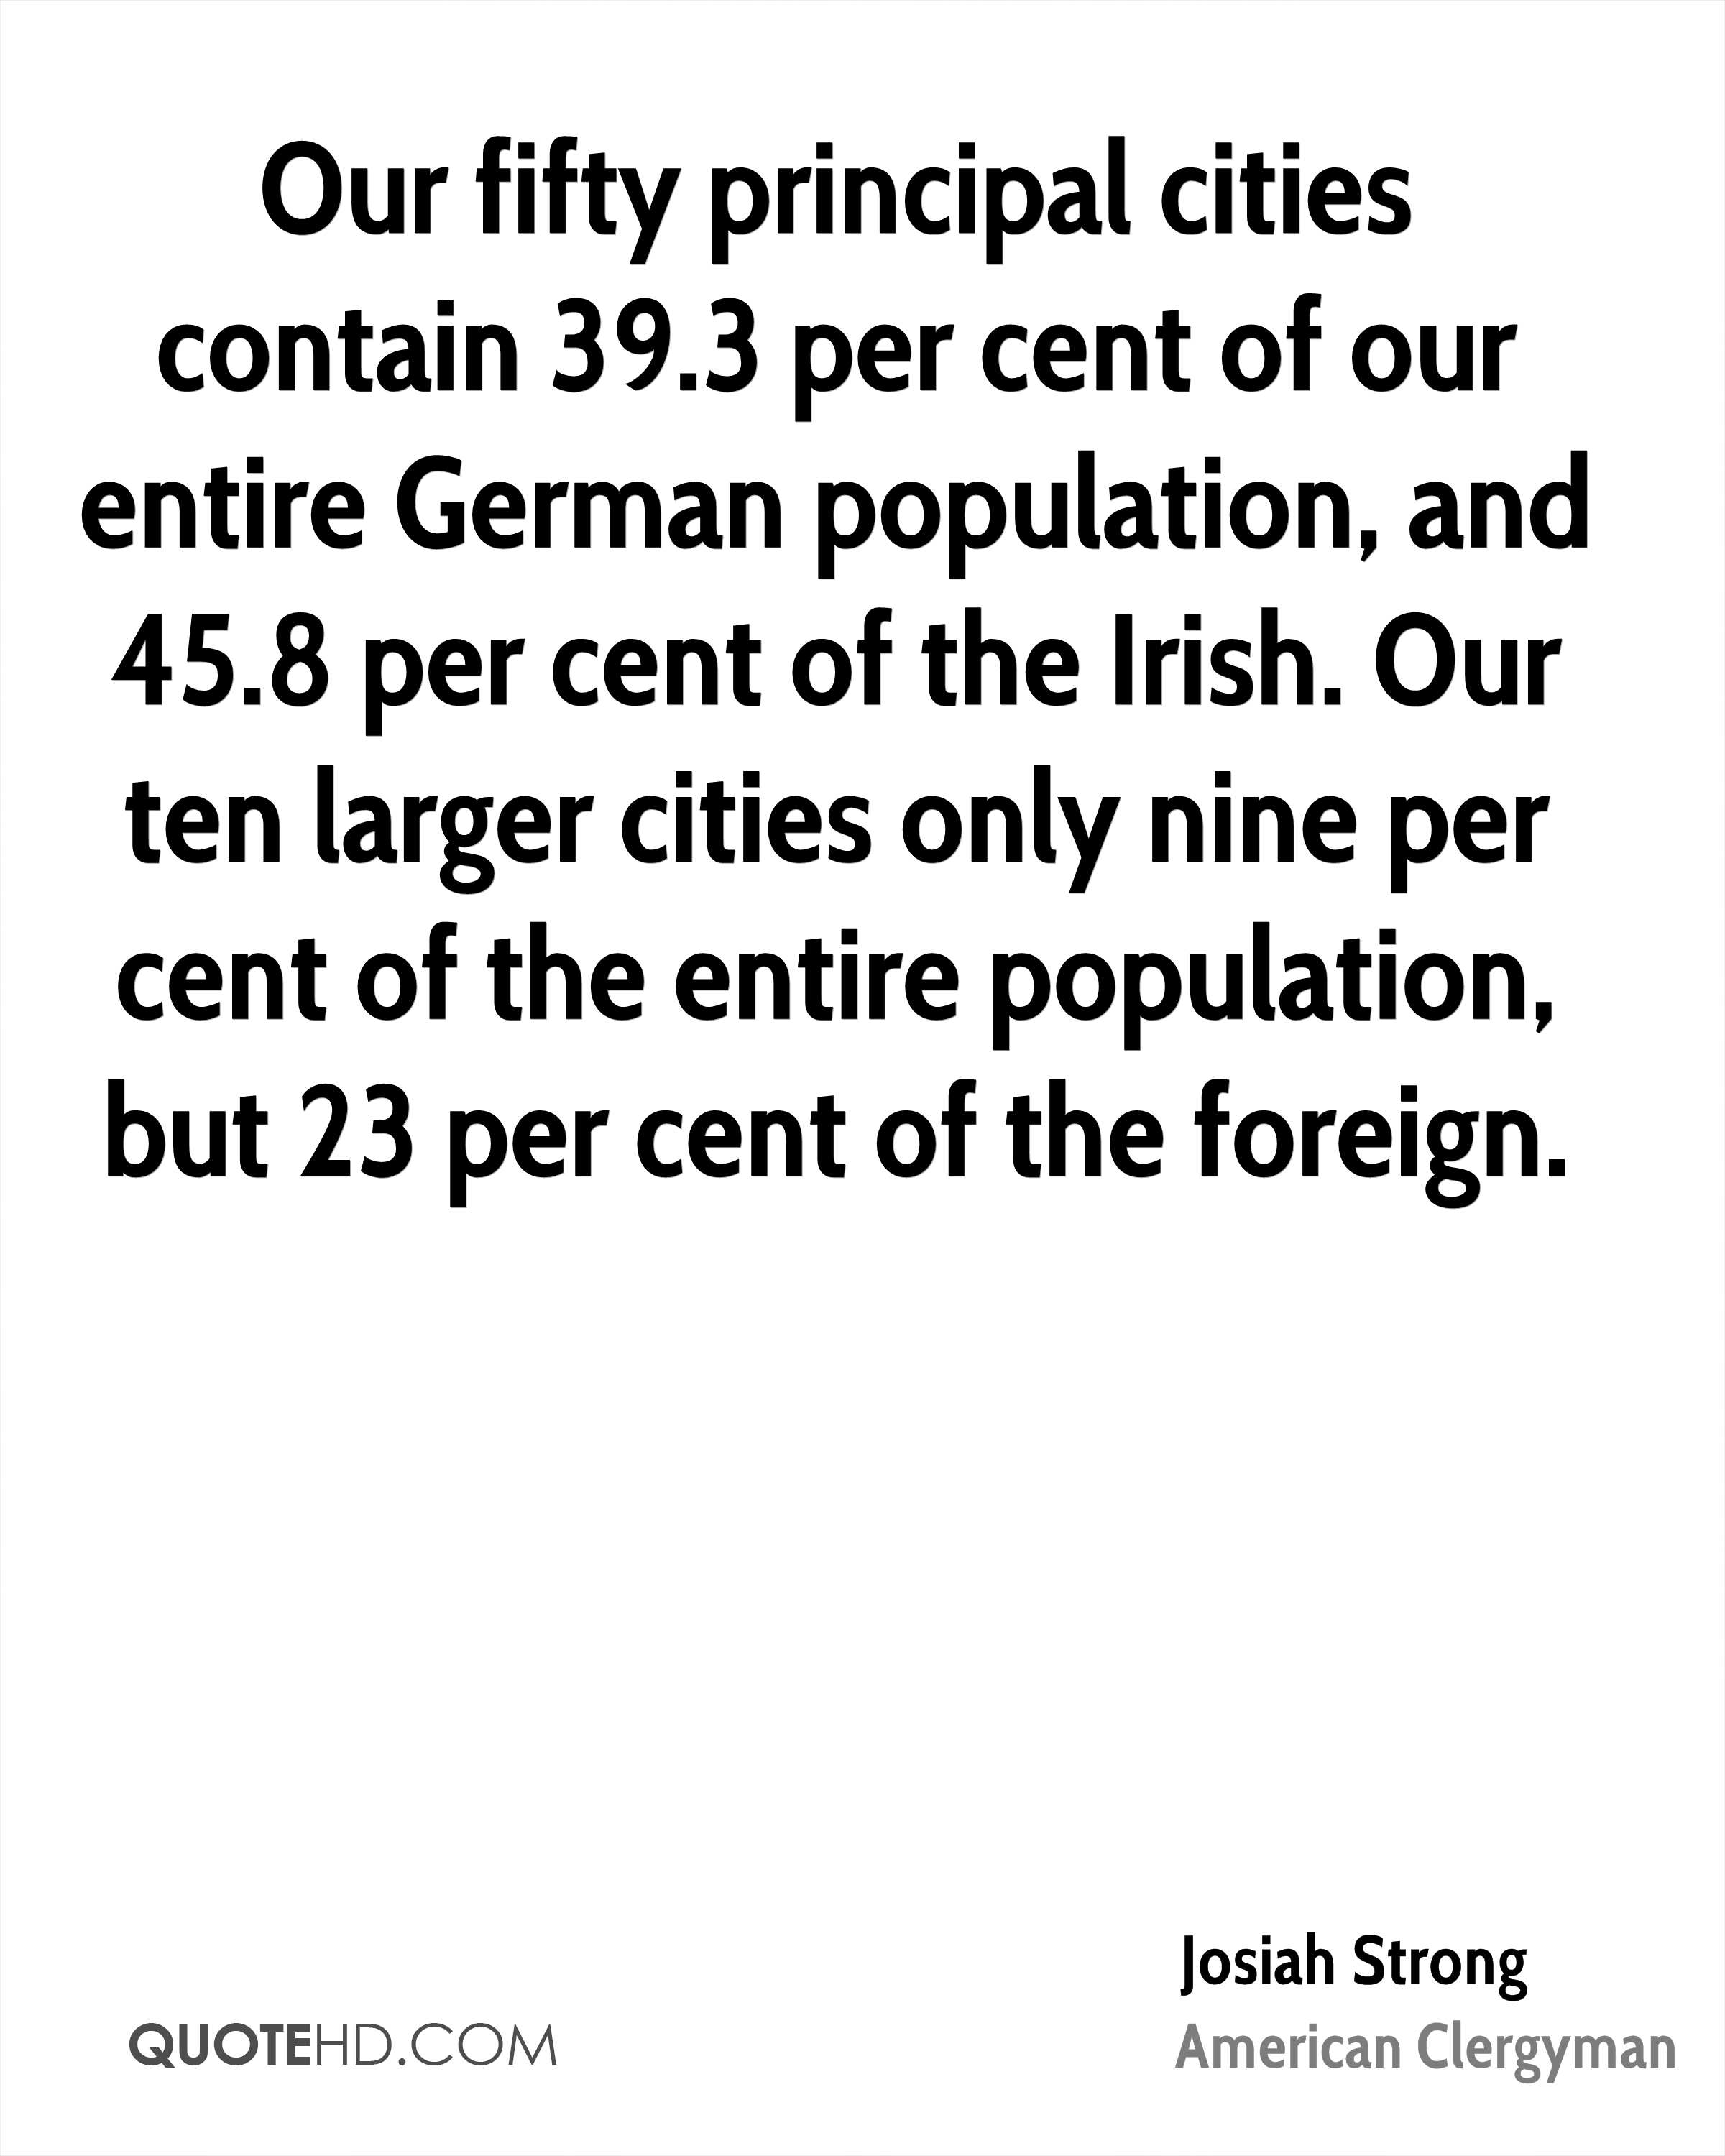 Our fifty principal cities contain 39.3 per cent of our entire German population, and 45.8 per cent of the Irish. Our ten larger cities only nine per cent of the entire population, but 23 per cent of the foreign.